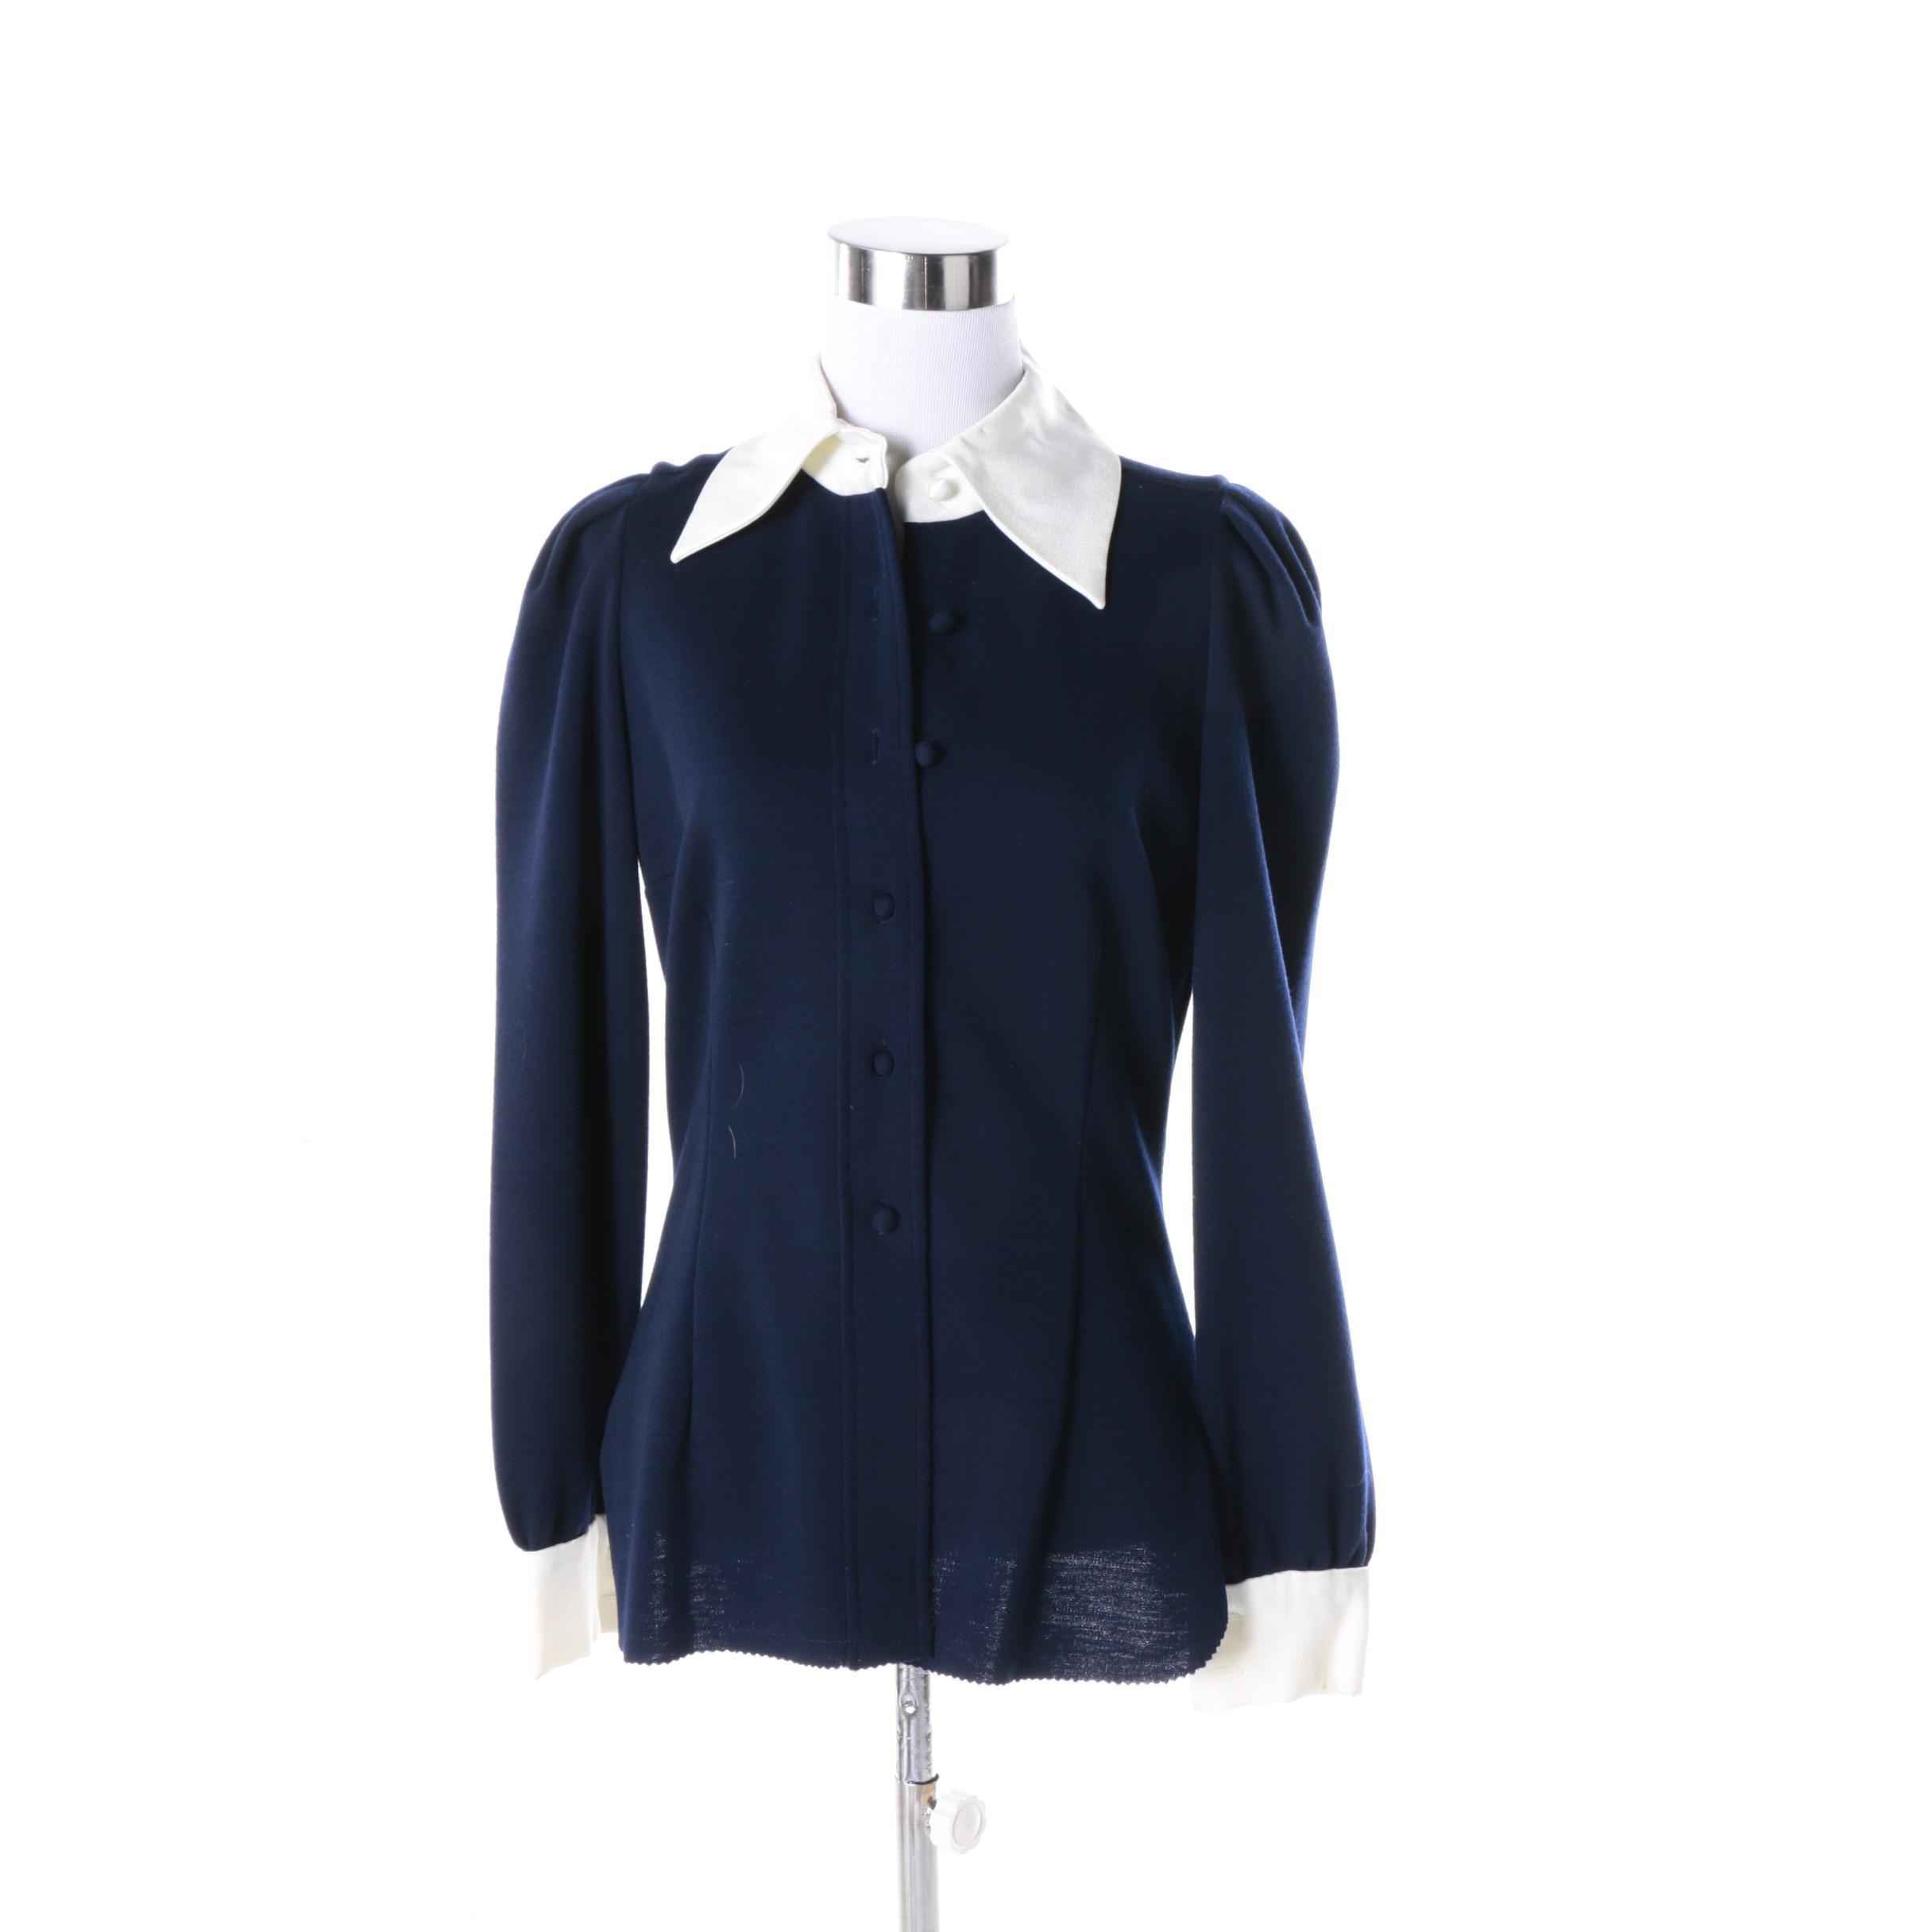 Women's Vintage Cardinali Blouse with Silk Collar